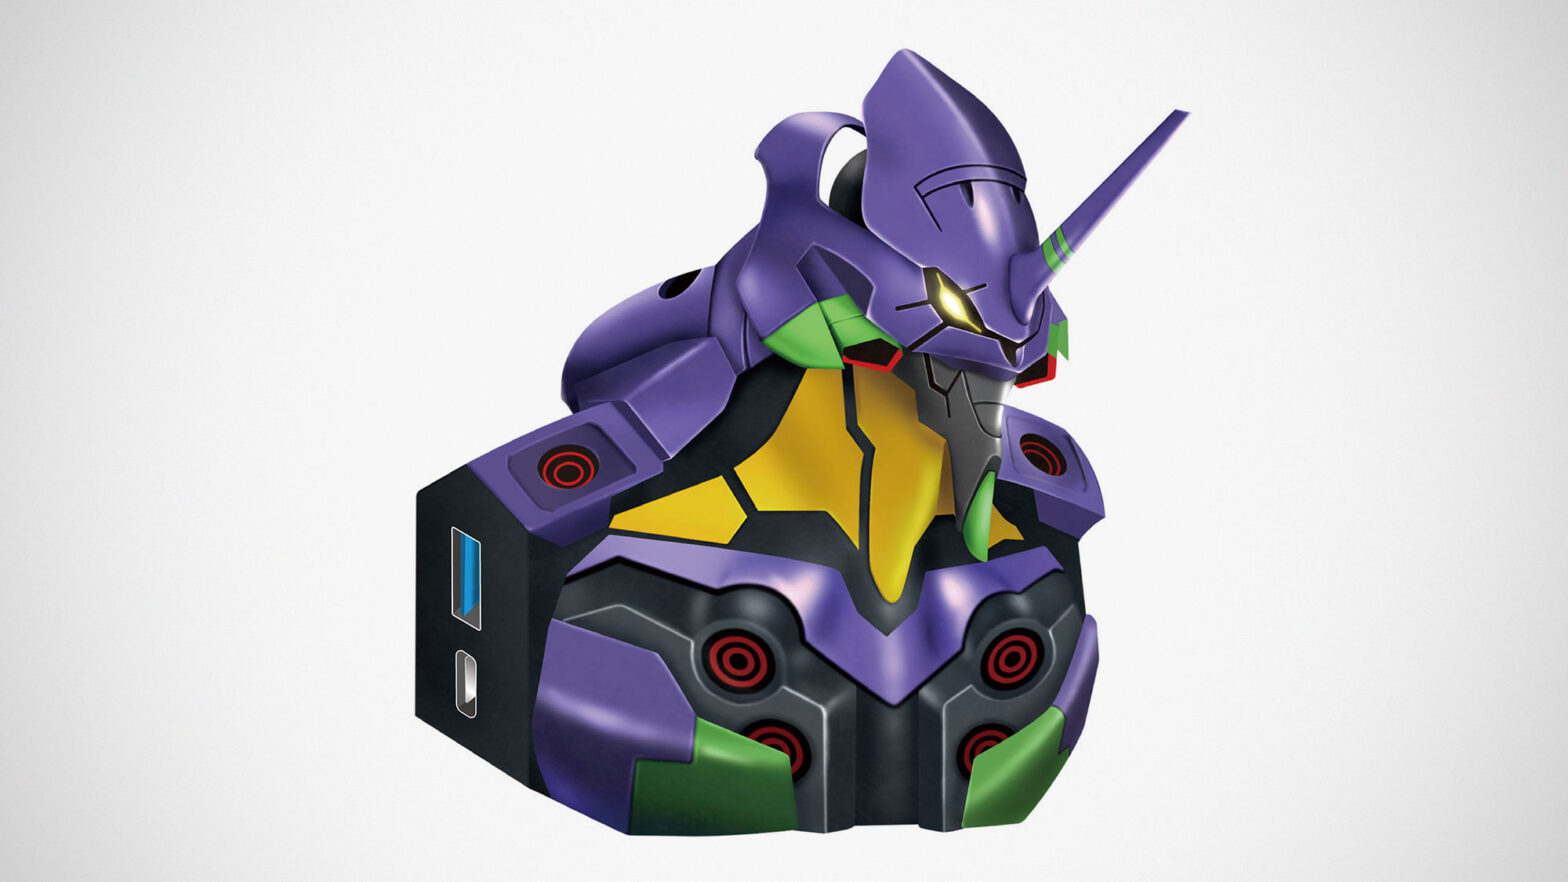 Tops Electroys Evangelion Unit-01 USB Hub